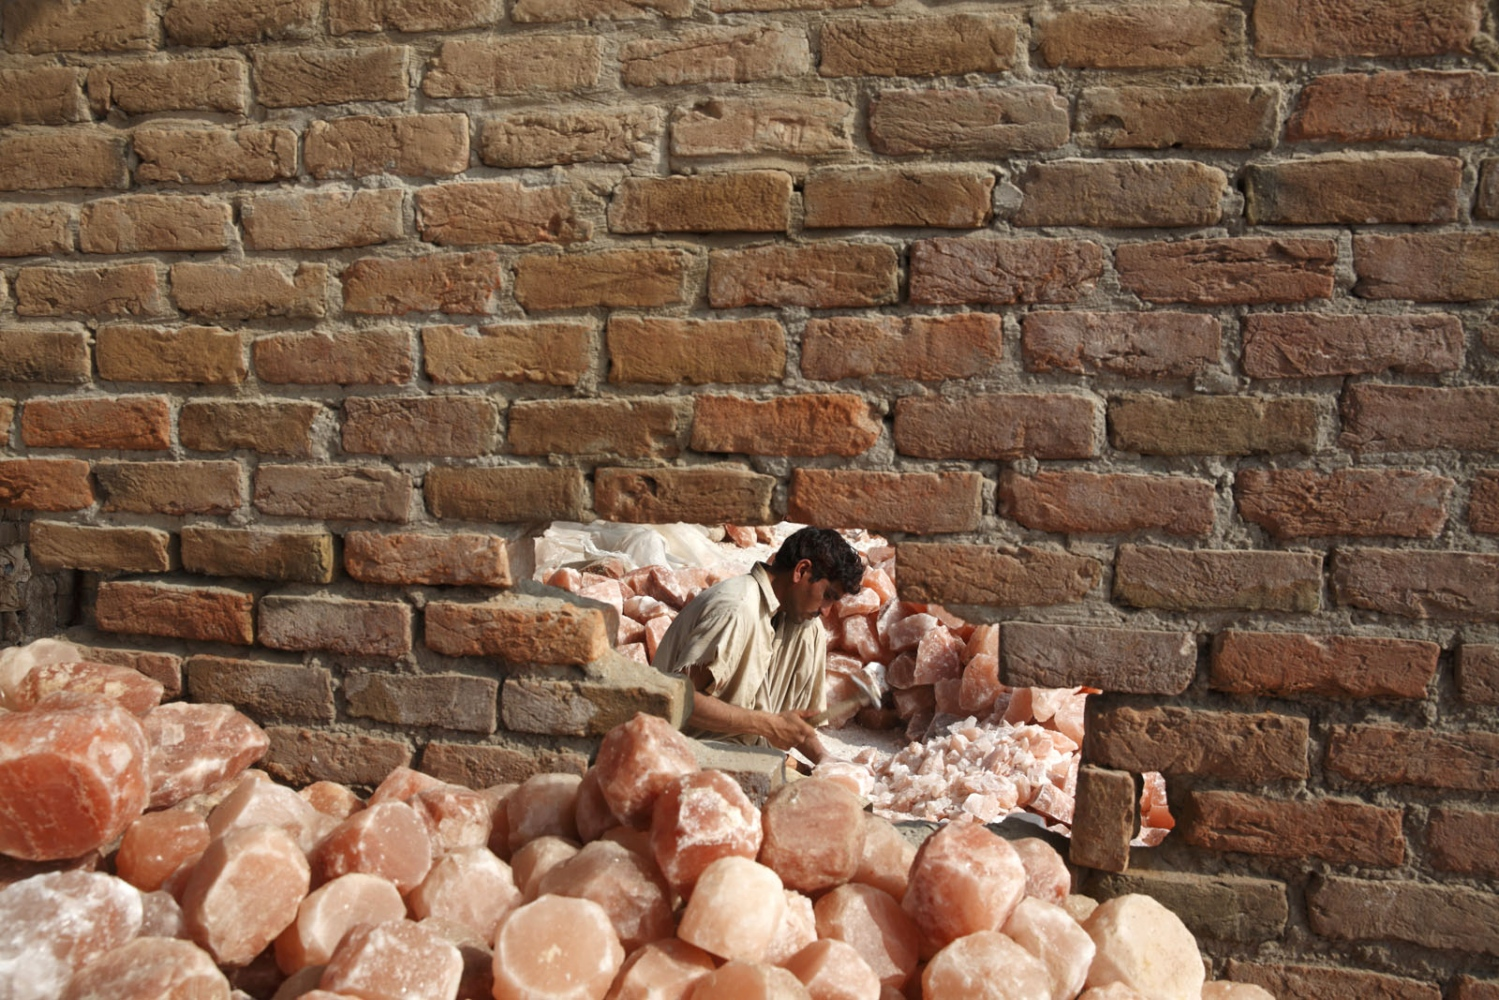 At a salt carving factory a many trims salt bricks in to cubes ready to be carved in to objects such as candle holders or ash-trays. Punjab, Pakistan.